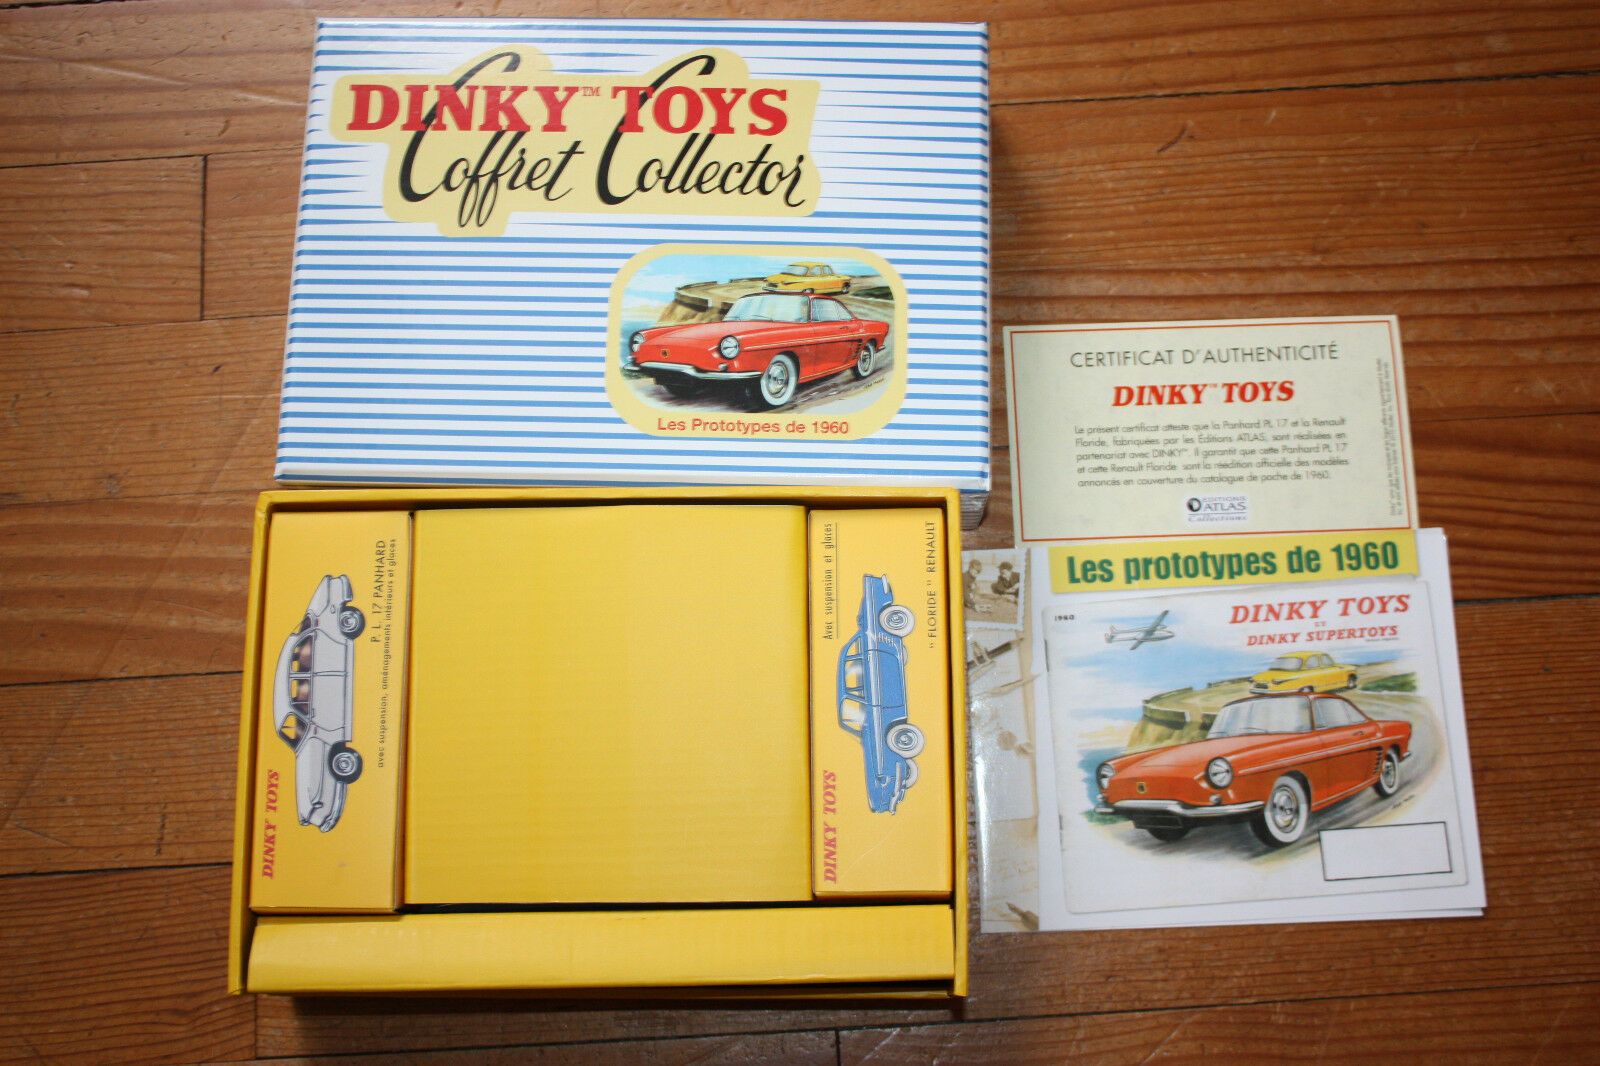 DINKY TOYS  COFFRET COLLECTOR  ProugeOYPES 1960  PANHARD  RENAULT  OVP  MINT